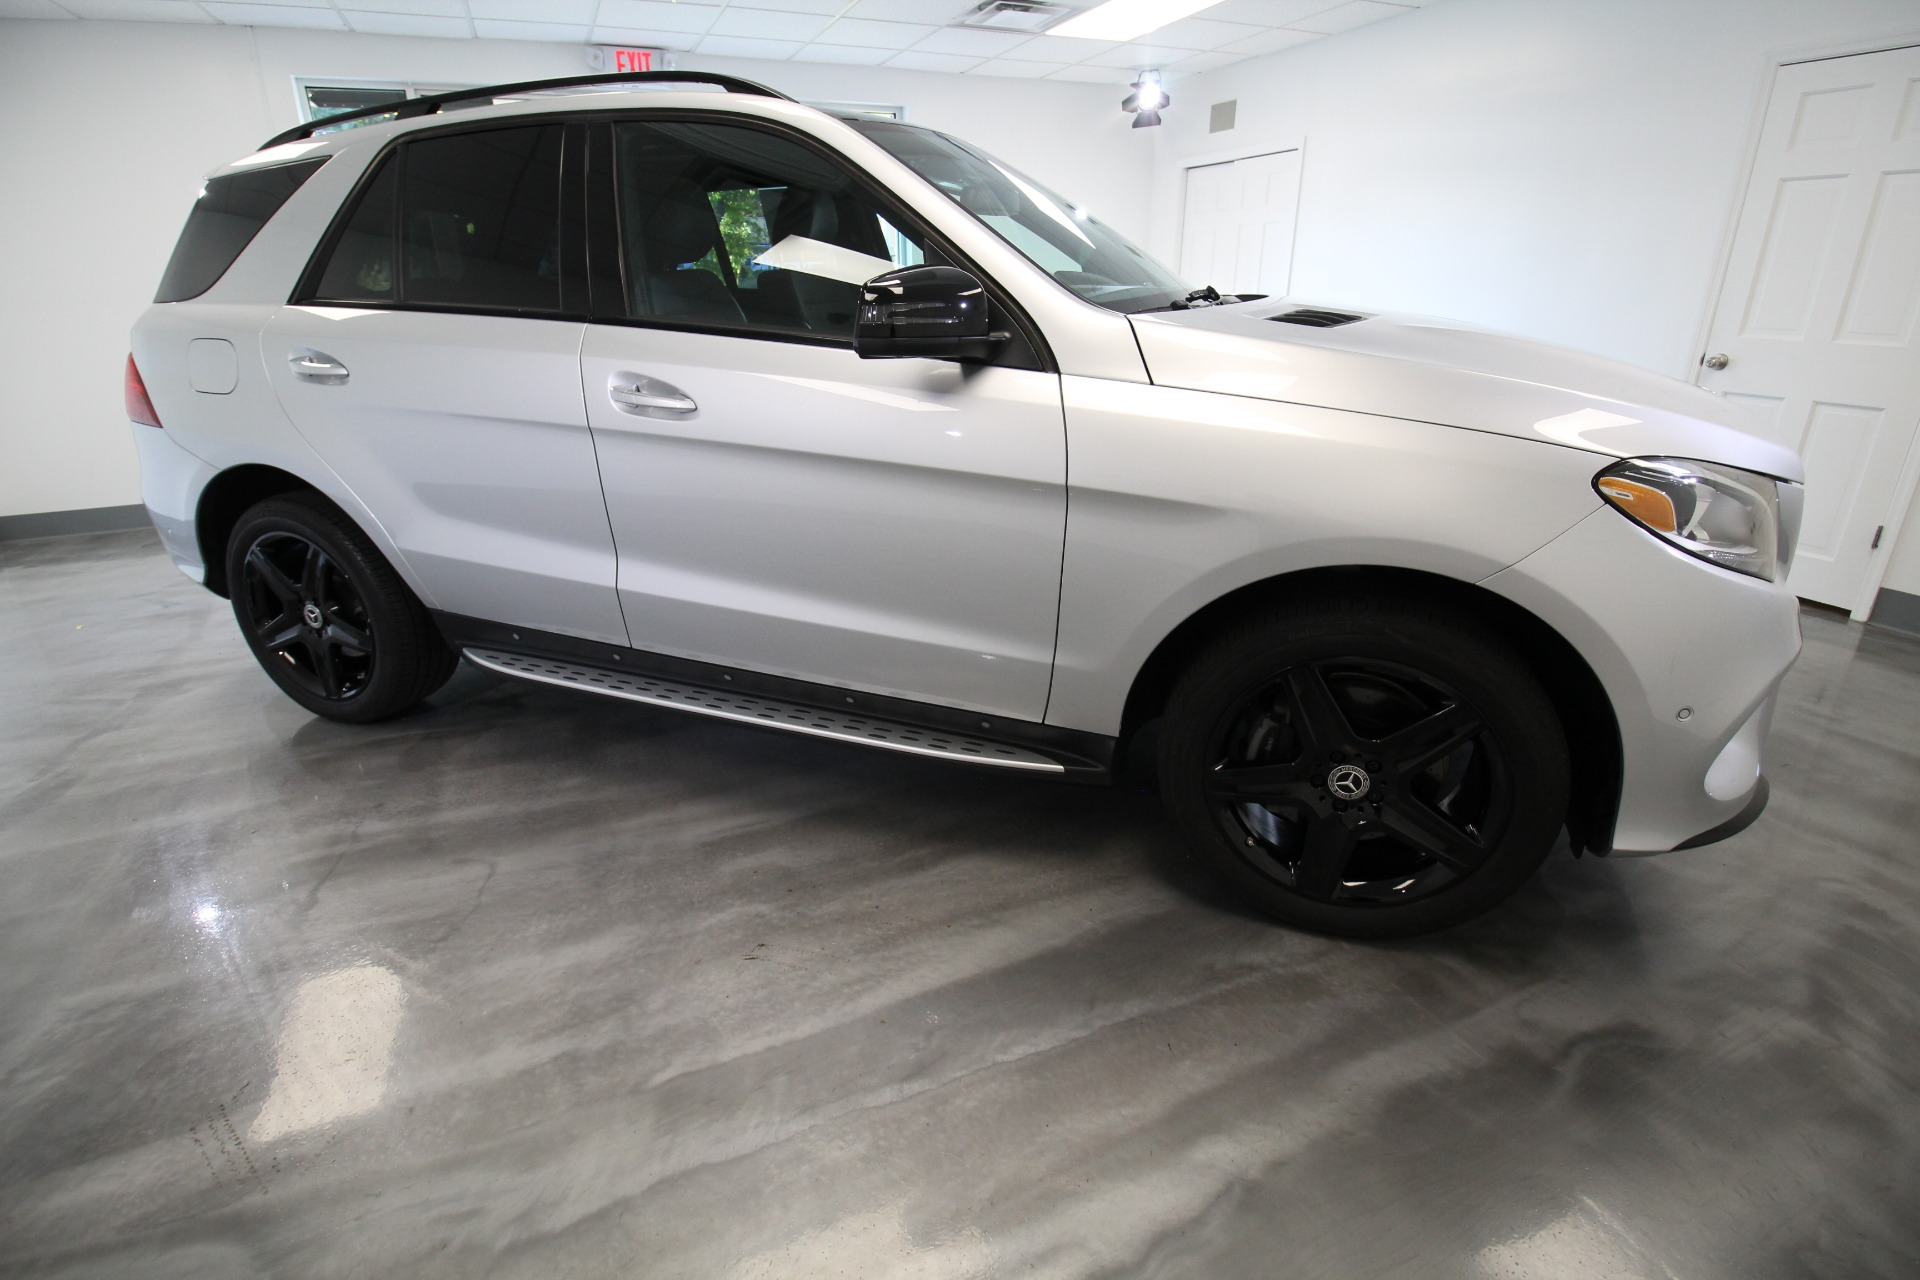 Used 2018 Mercedes-Benz GLE-Class GLE350 4MATIC STUNNING AMG AND NITE PKGS PANO ROOF   Albany, NY